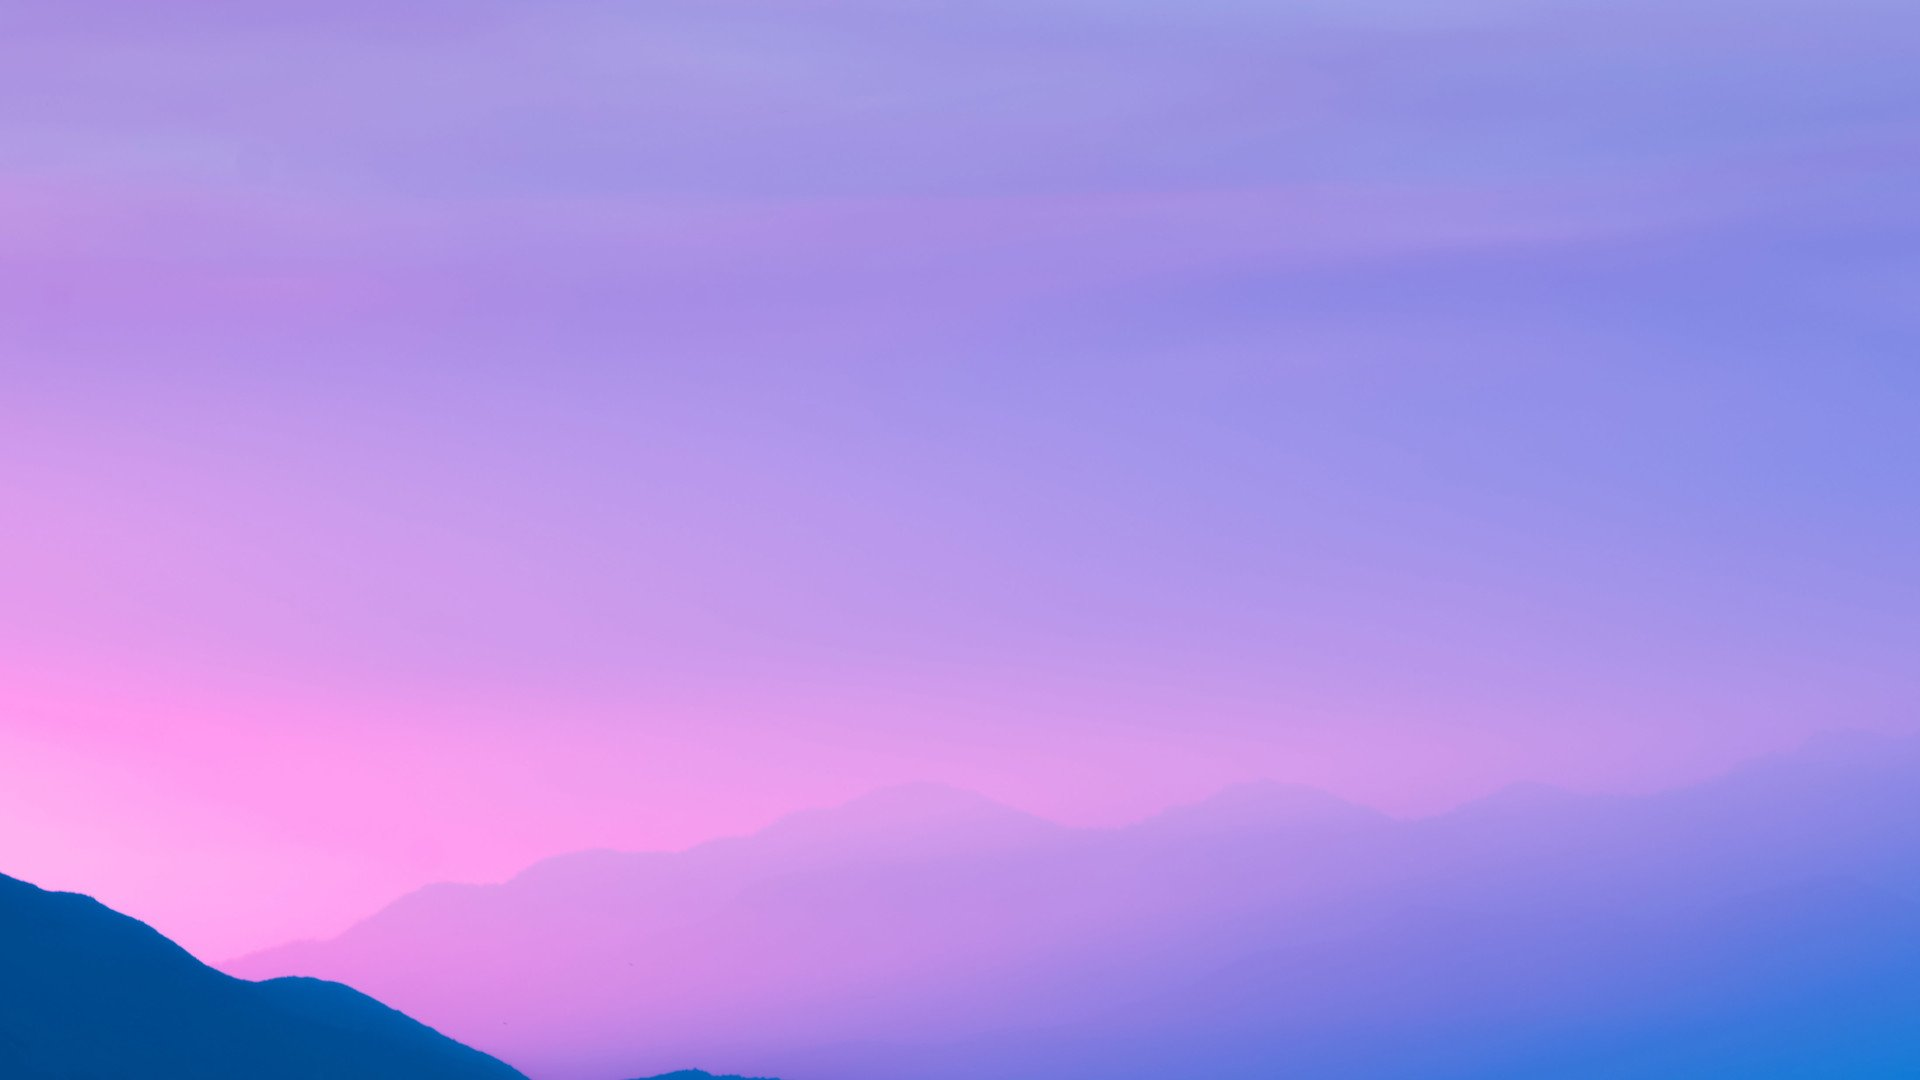 Pink Sky Free Download Wallpaper